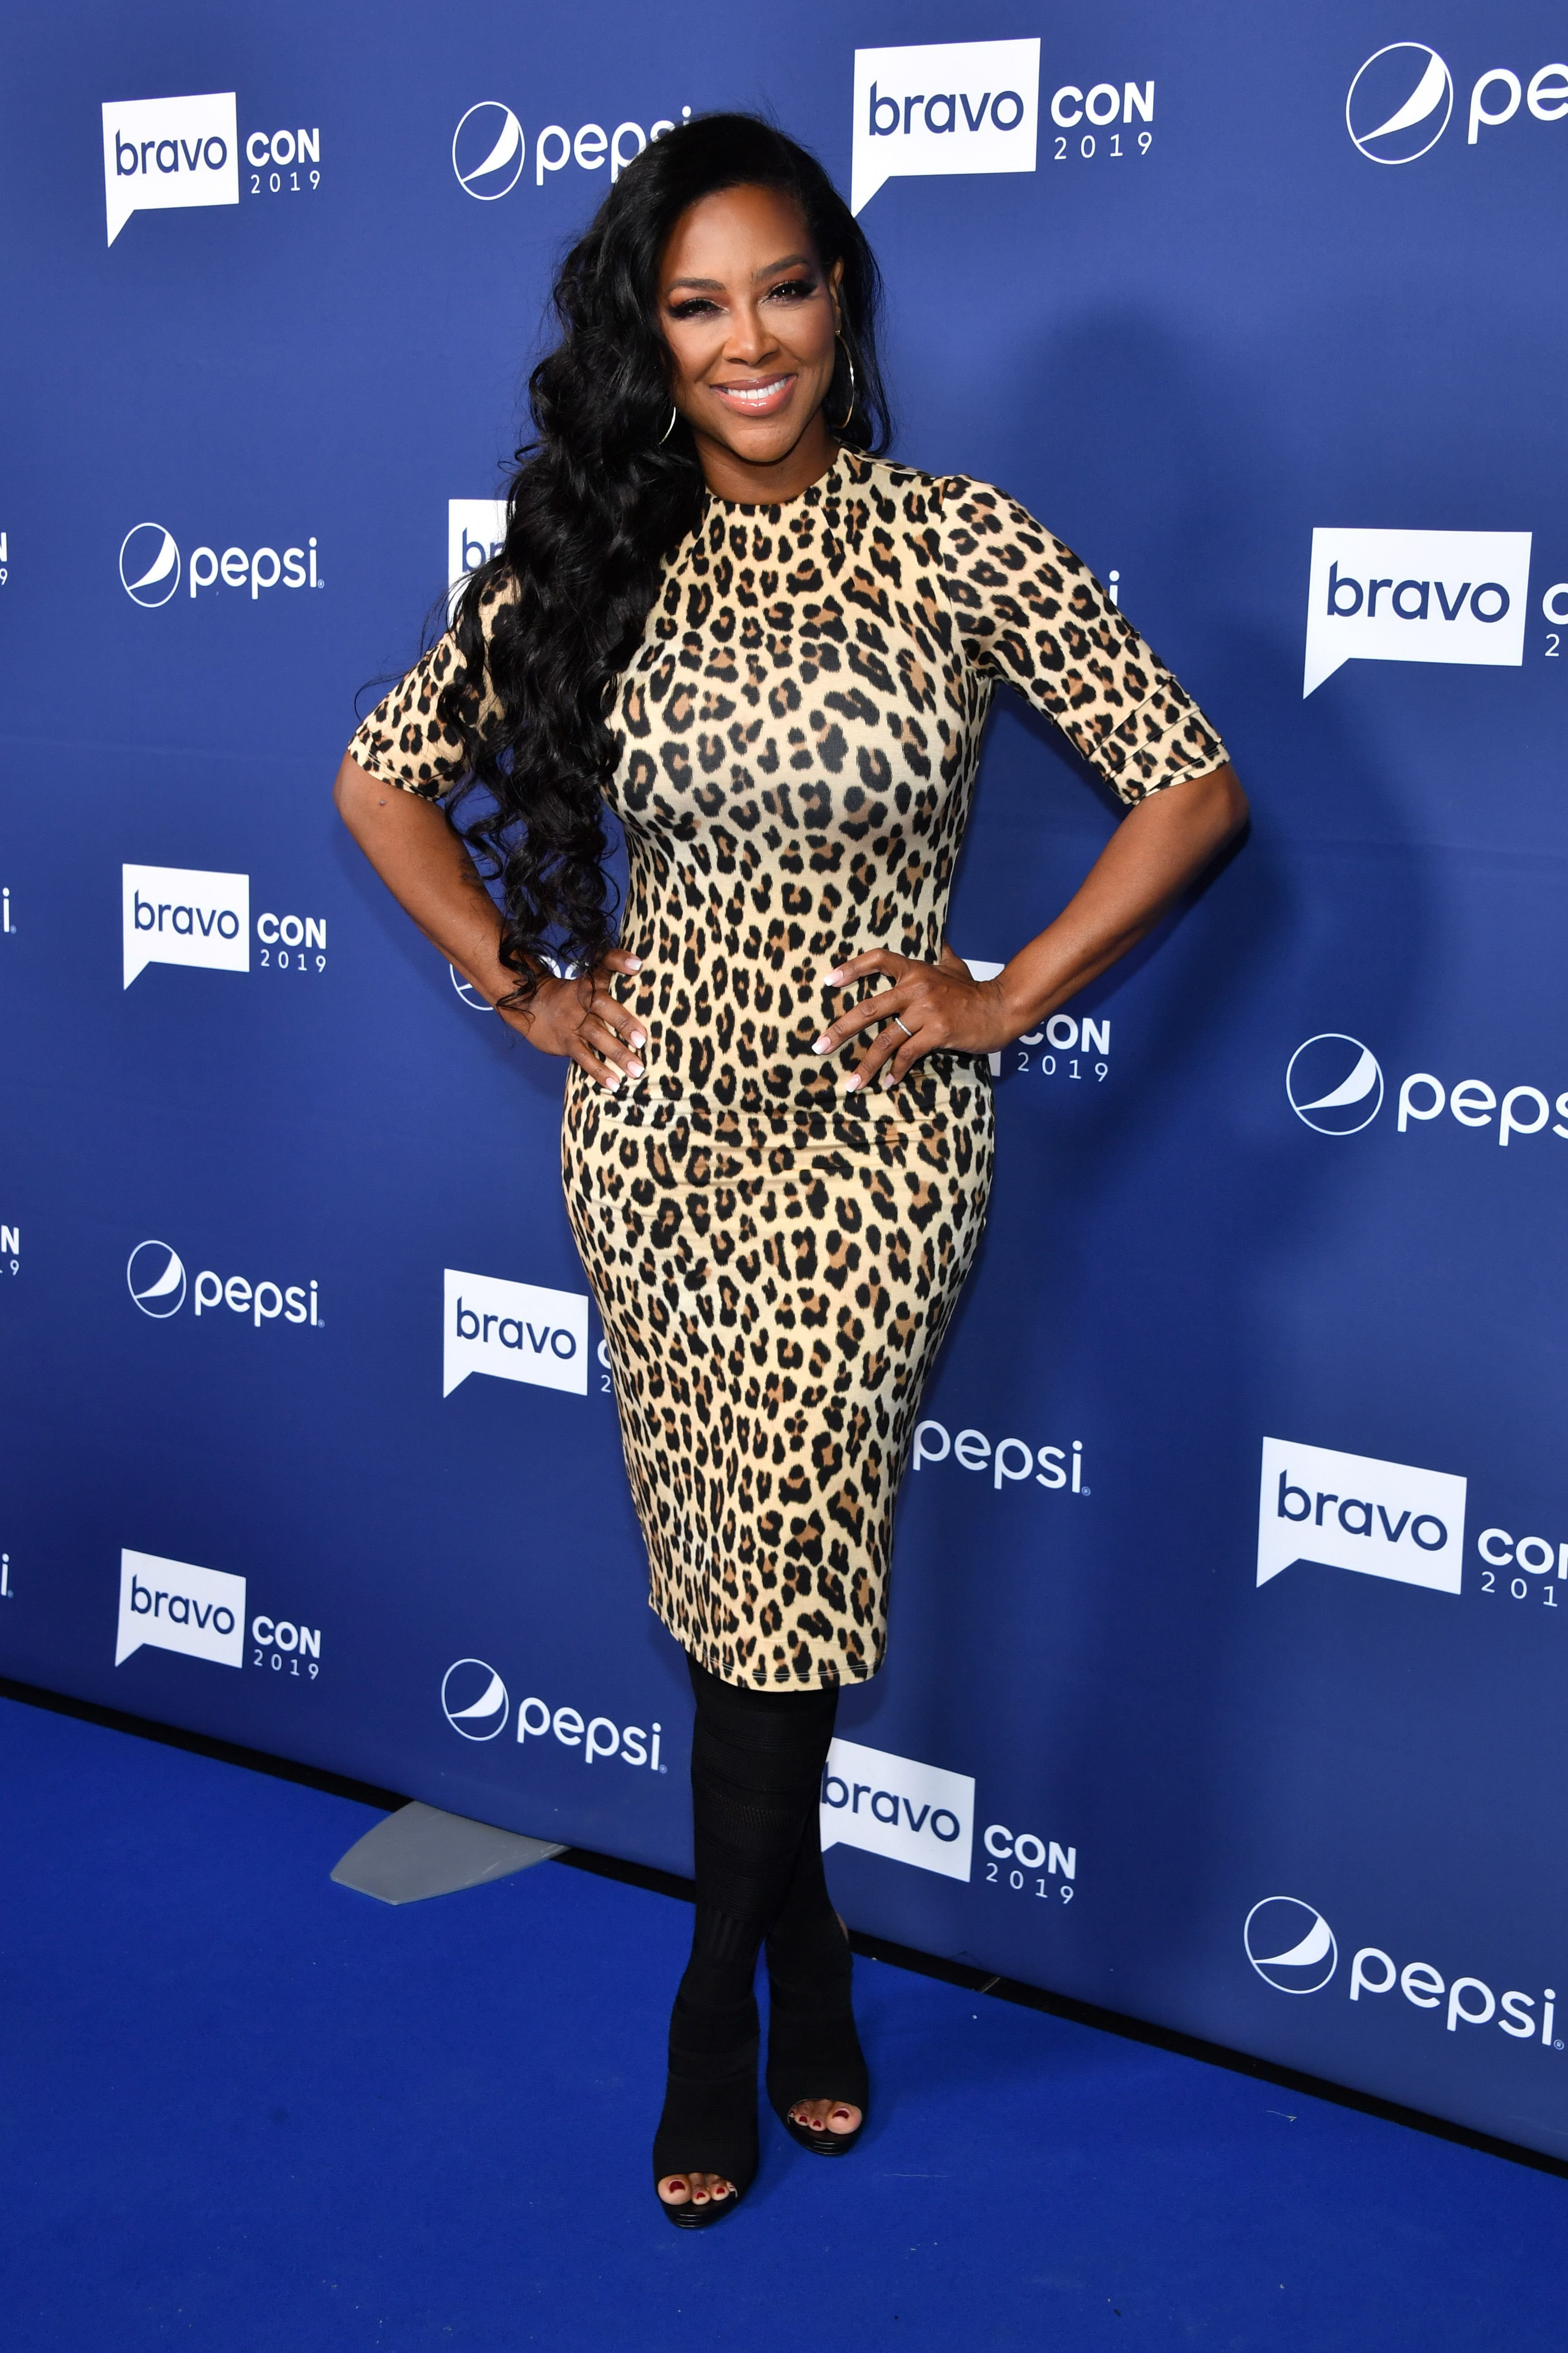 Kenya Moore attends the opening night of the 2019 BravoCon, November 2019 | Photo: Getty Images